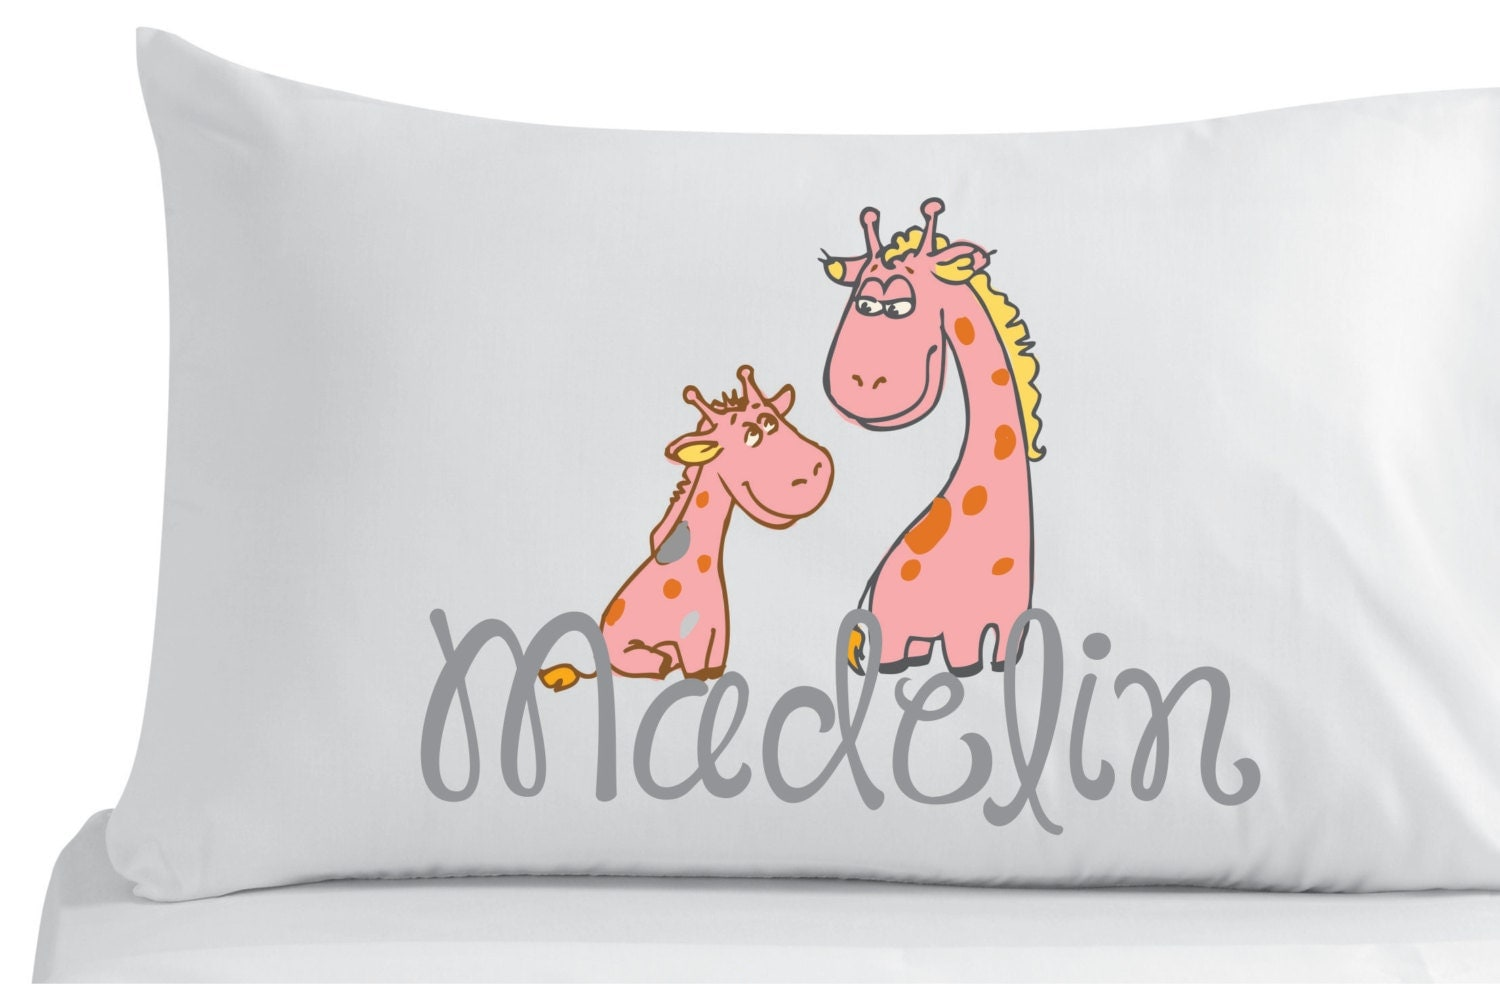 Cute Pillow Cases : Personalized pillow case cute little giraffes bedroom